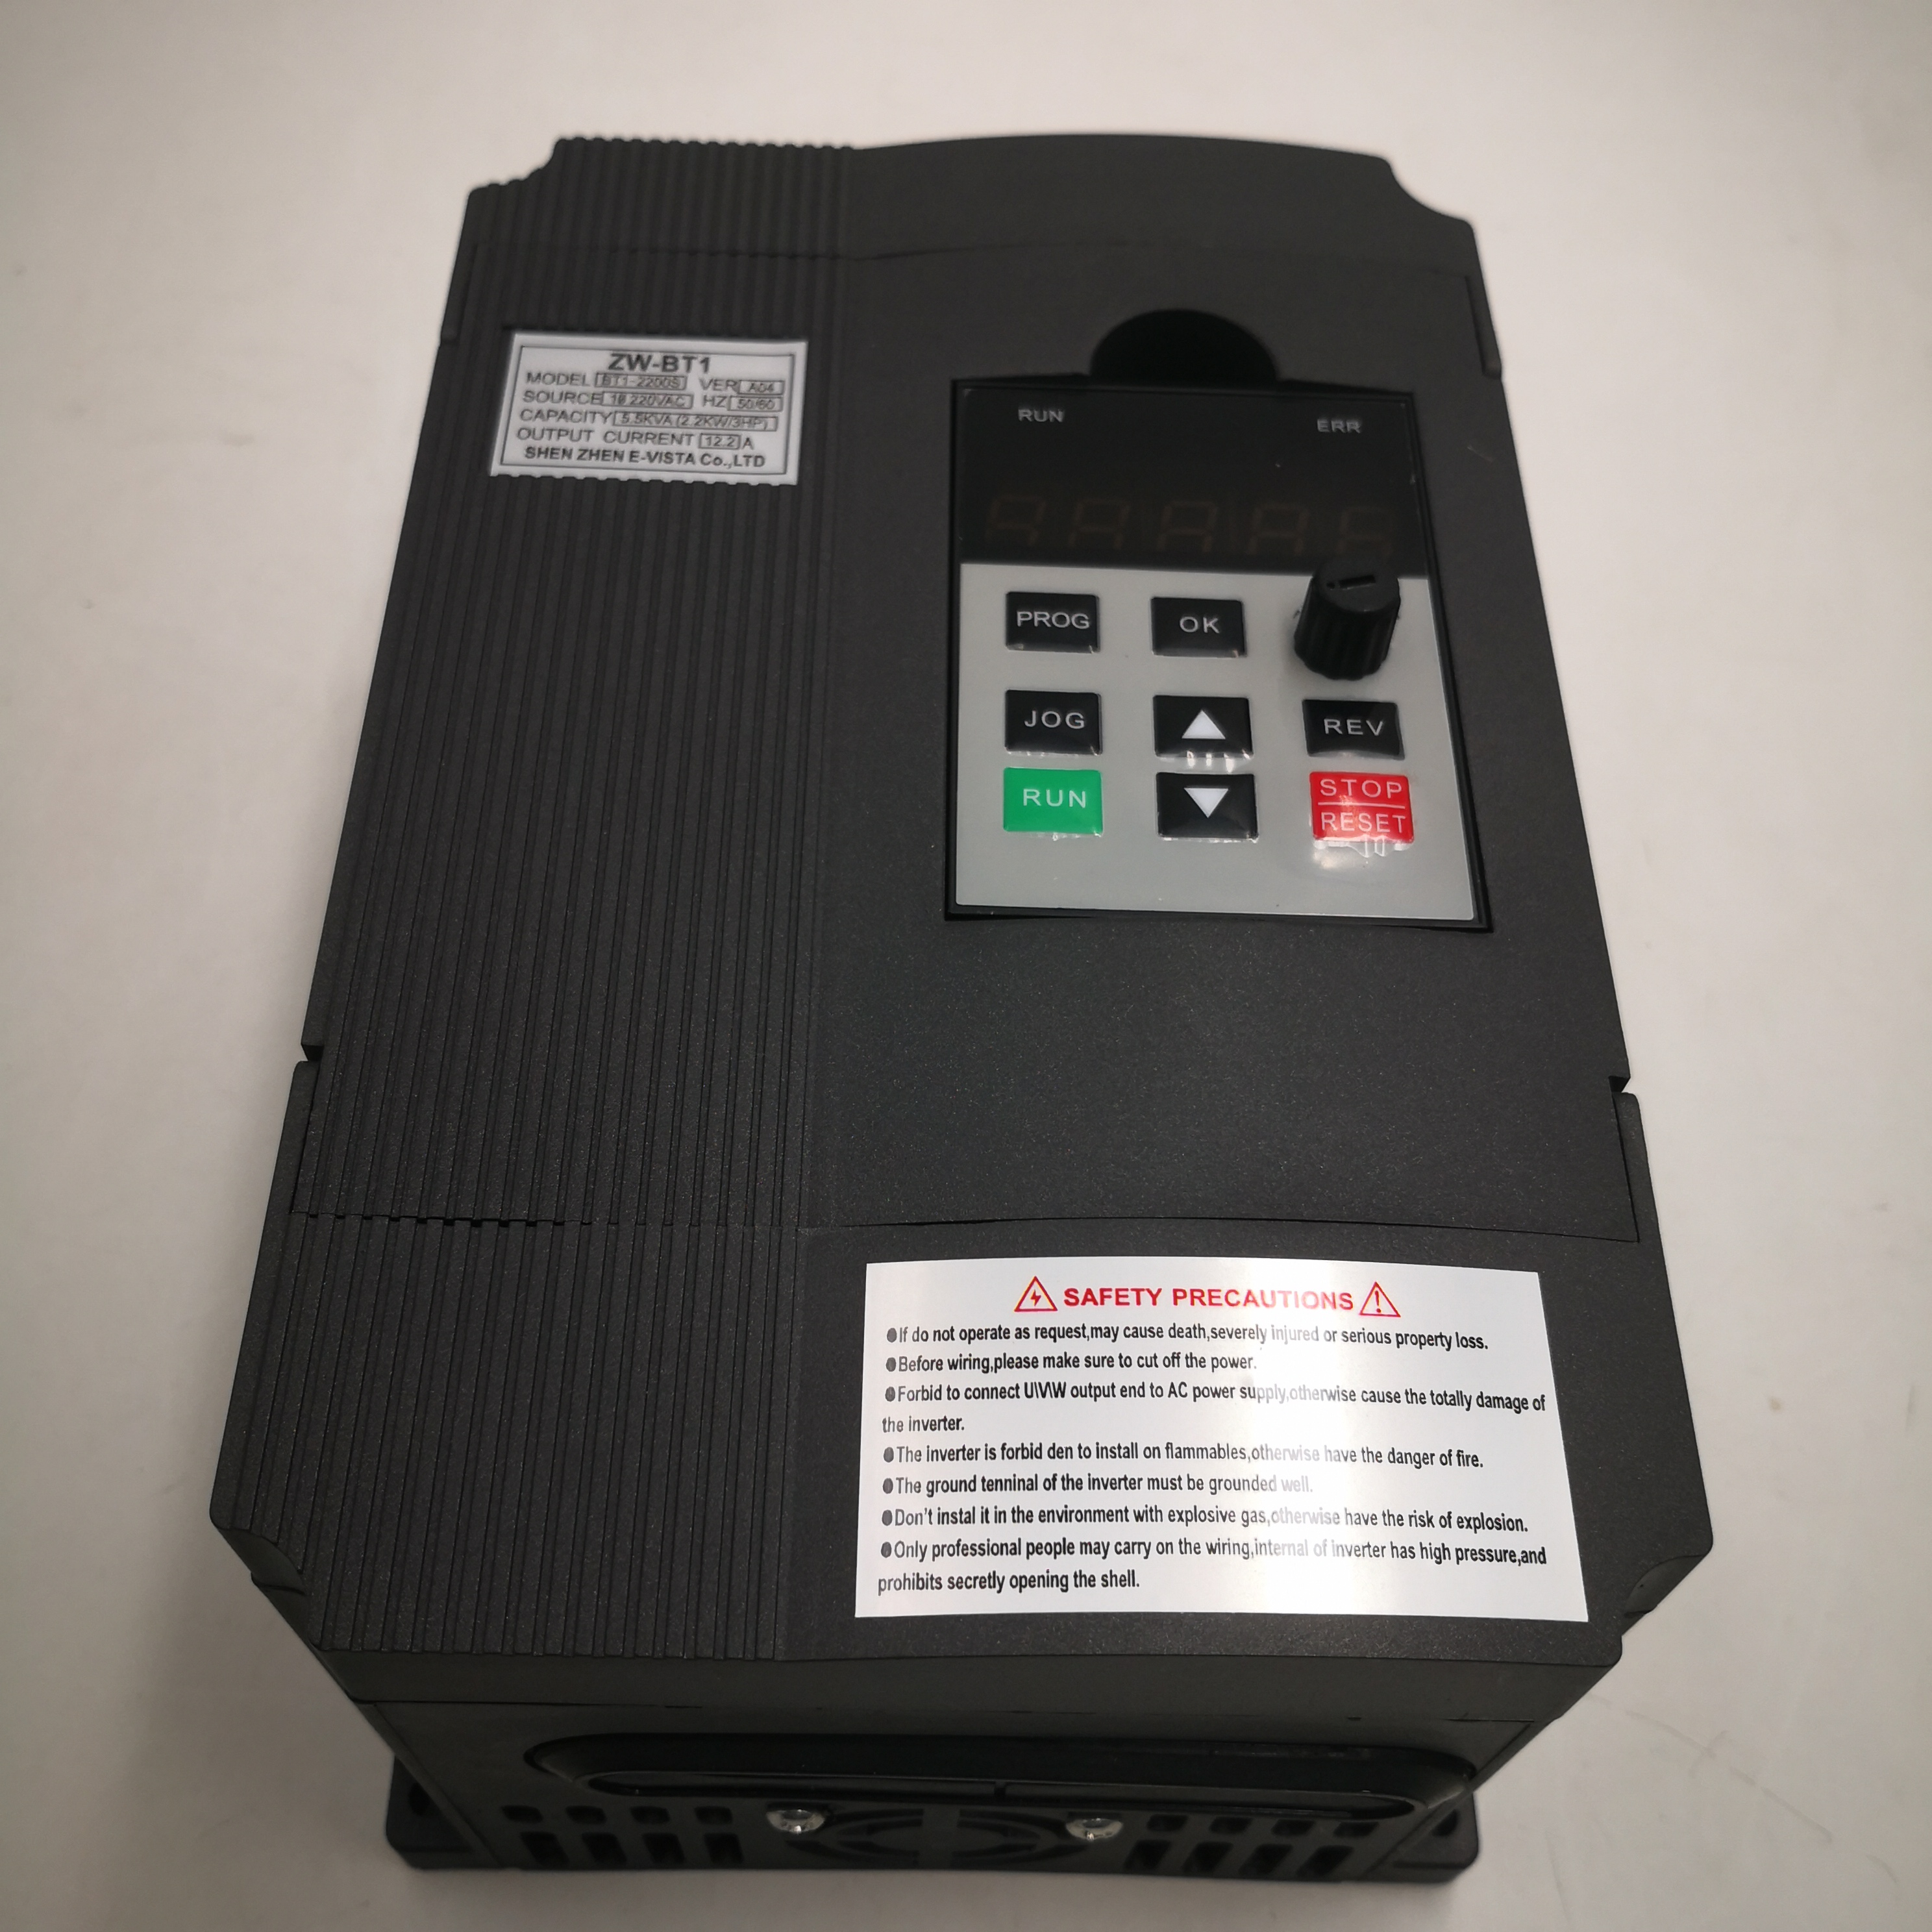 VFD <font><b>Inverter</b></font> VFD <font><b>2.2KW</b></font> 220V IN and 220V 3P OUT Variable Frequency <font><b>Inverter</b></font> Drive <font><b>Inverter</b></font> ZW-BT1 free-shipping image